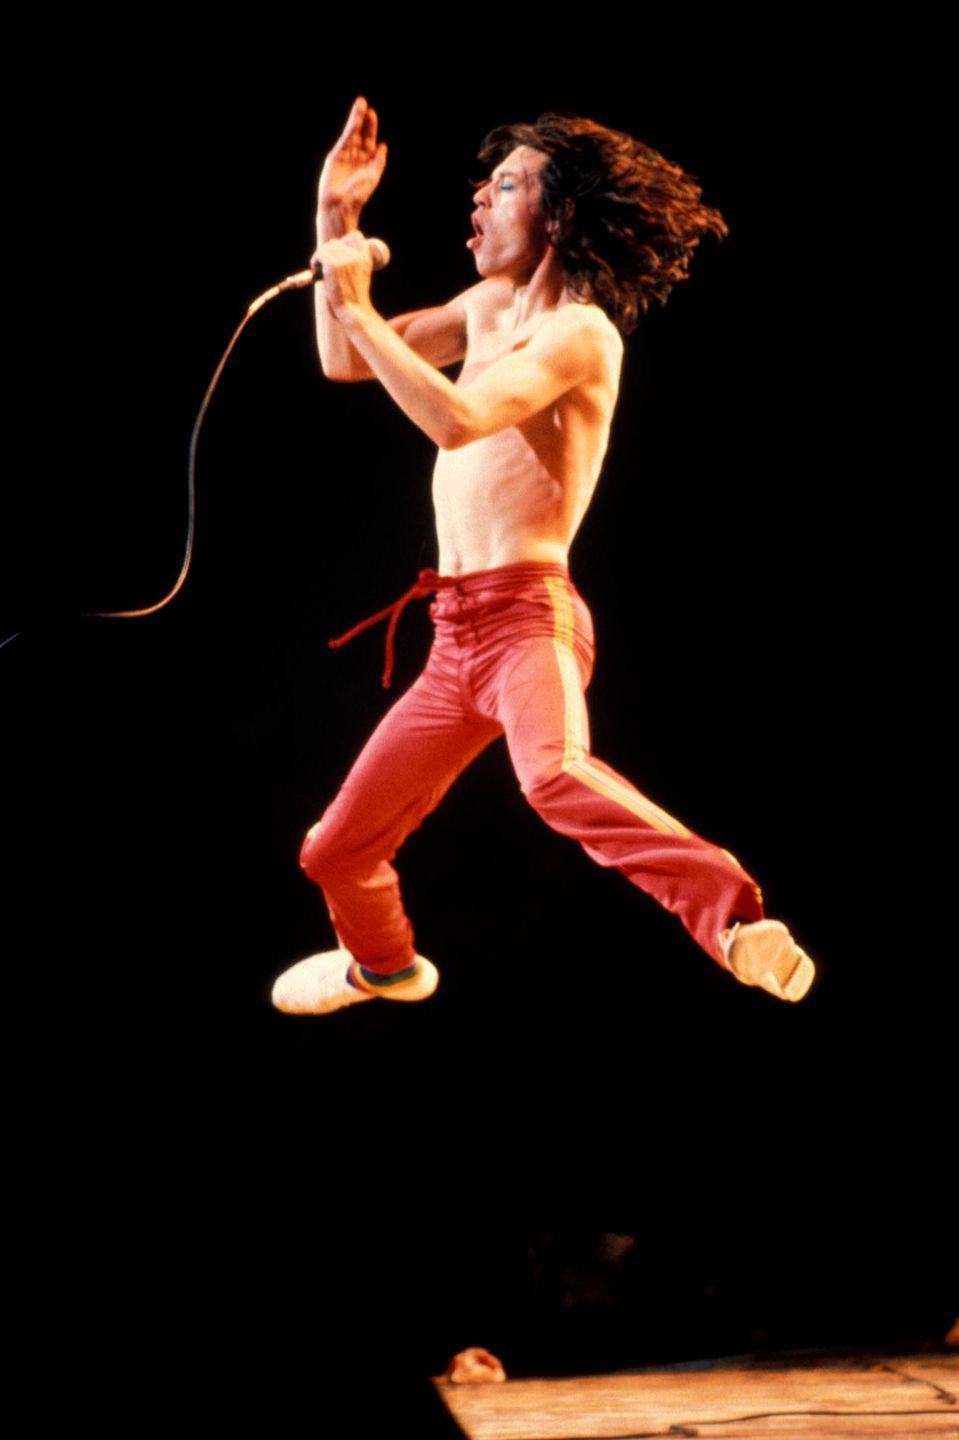 <p>Mick Jagger performing live onstage in New York in 1975.</p>